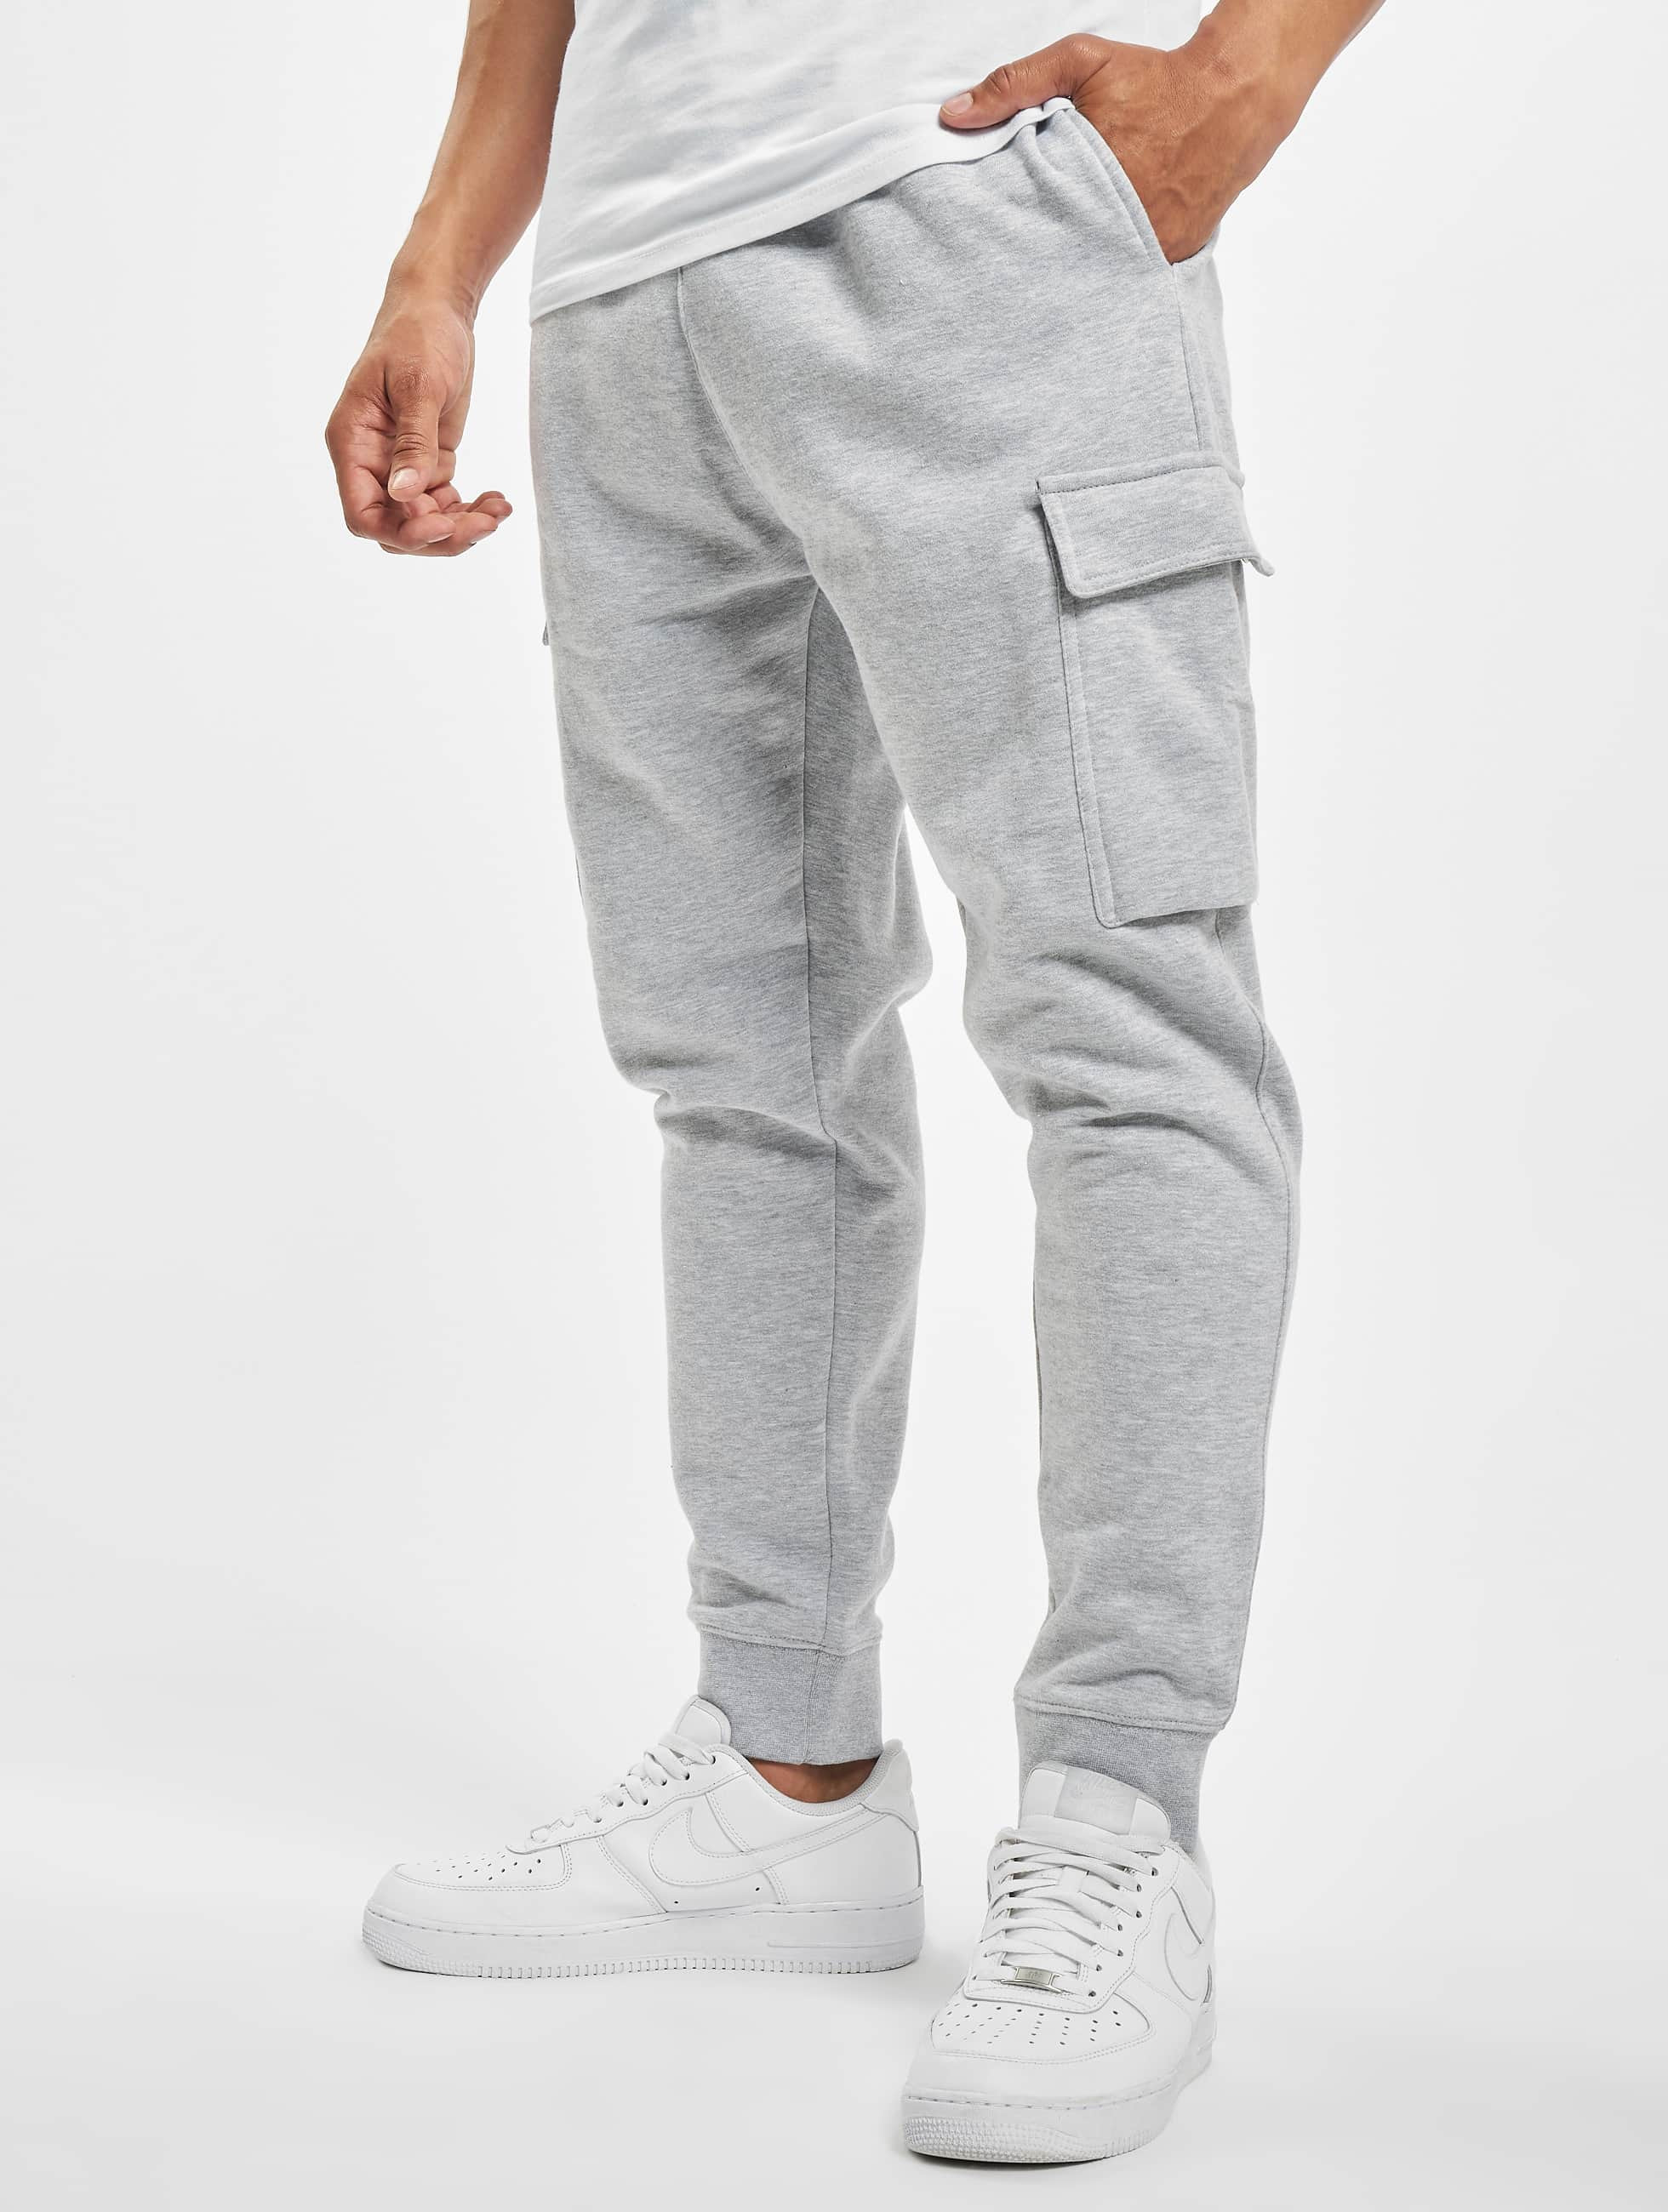 DEF / Sweat Pant Denni in grey XL